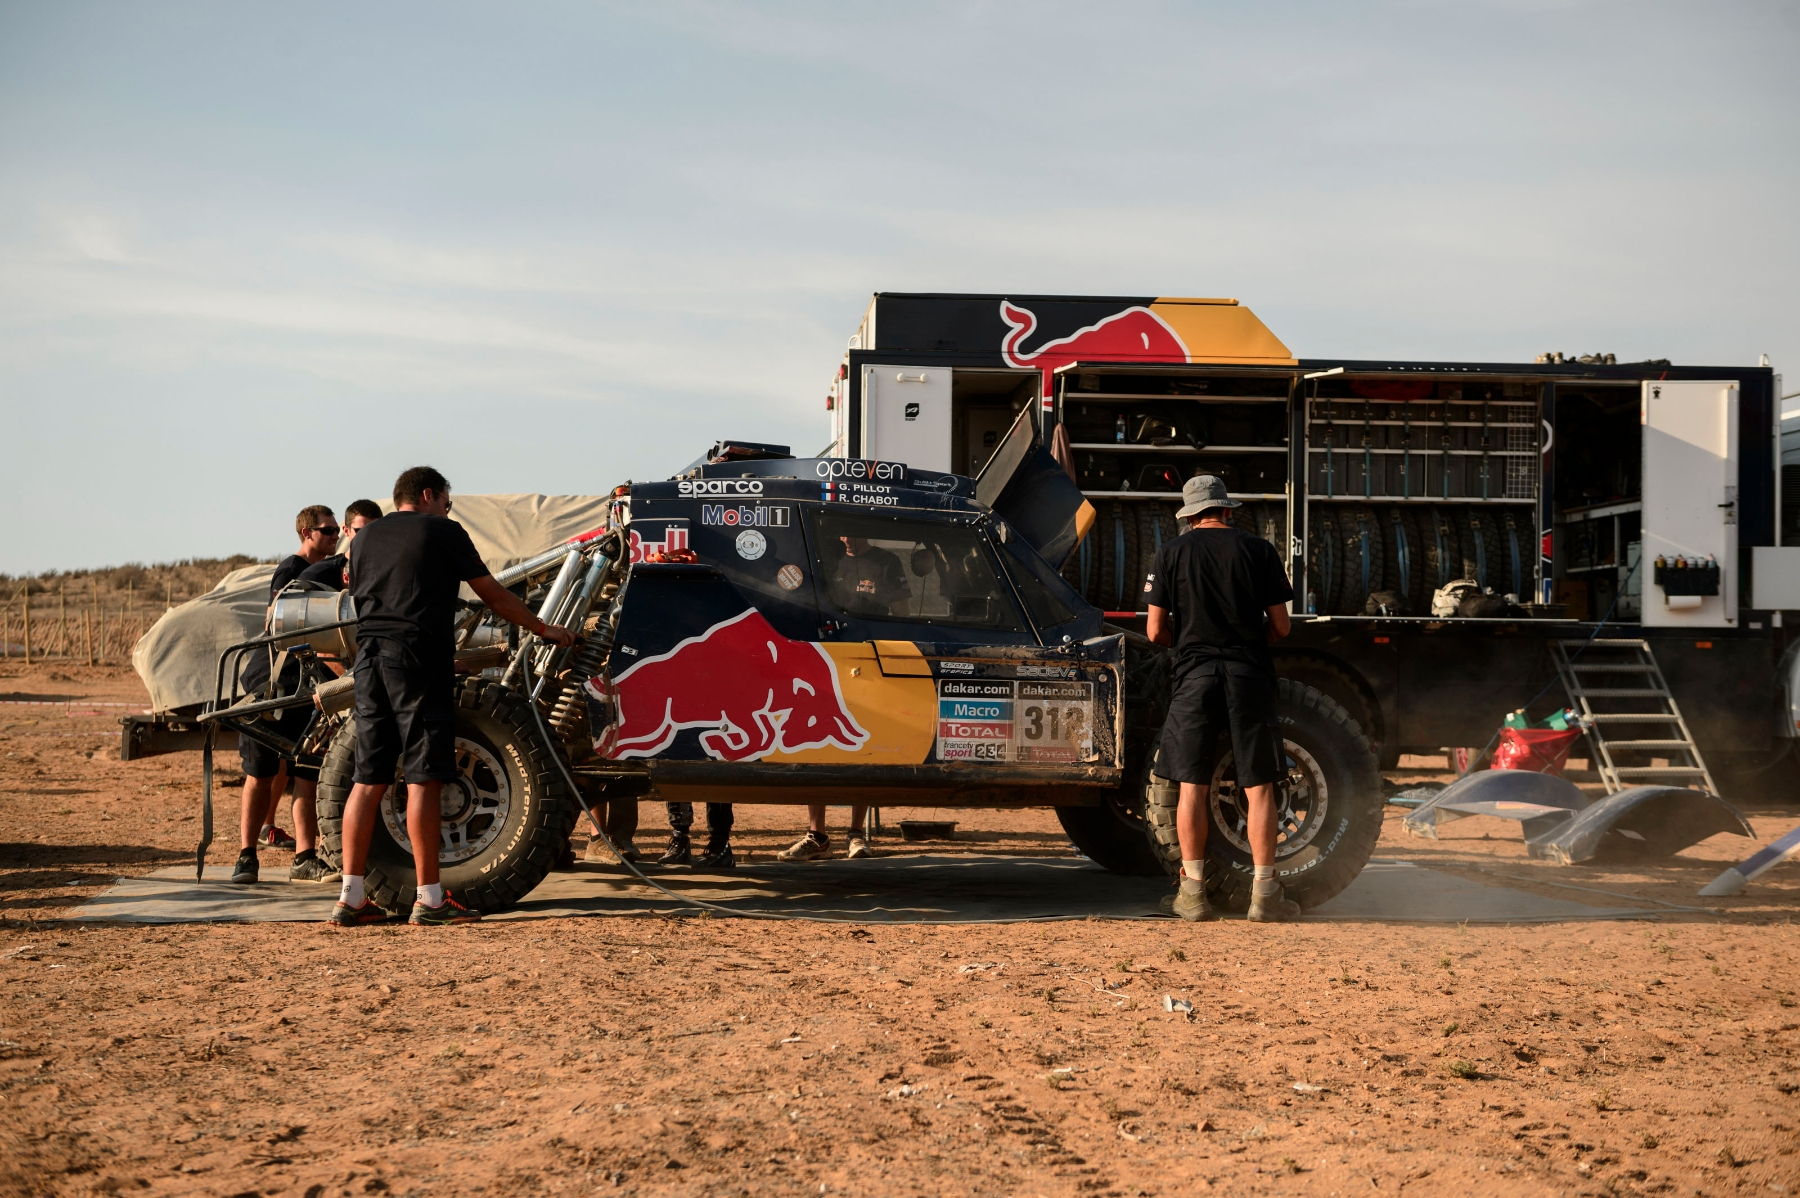 SMG seen at the Dakar Rally bivouac in La Serena, Chile on January 17th, 2014